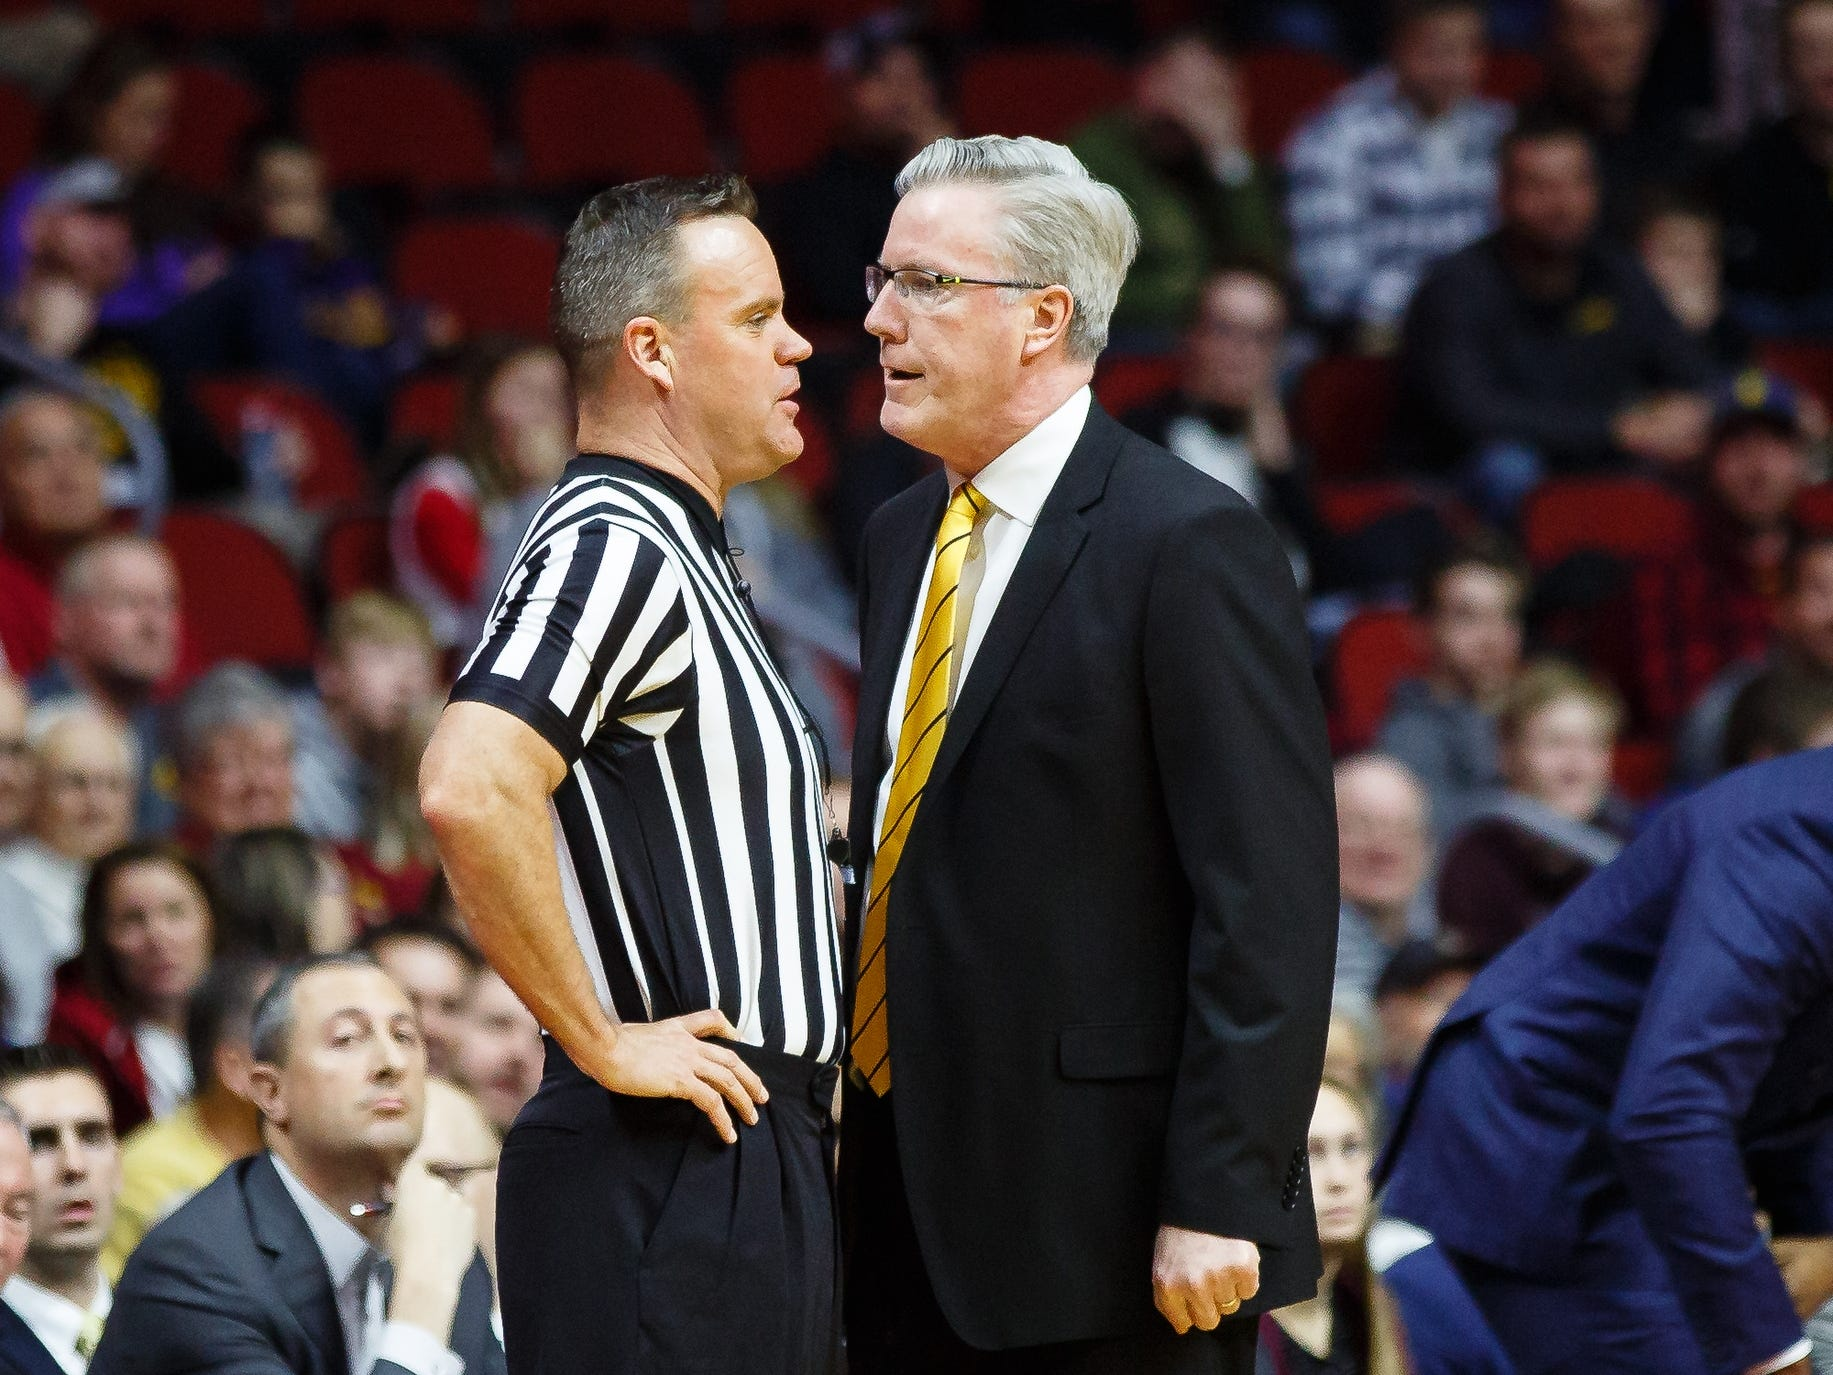 Iowa head coach Fran McCaffery argues a call during their basketball game at the Hy-Vee Classic on Saturday, Dec. 15, 2018, in Des Moines. Iowa takes a 39-18 lead over UNI into halftime.